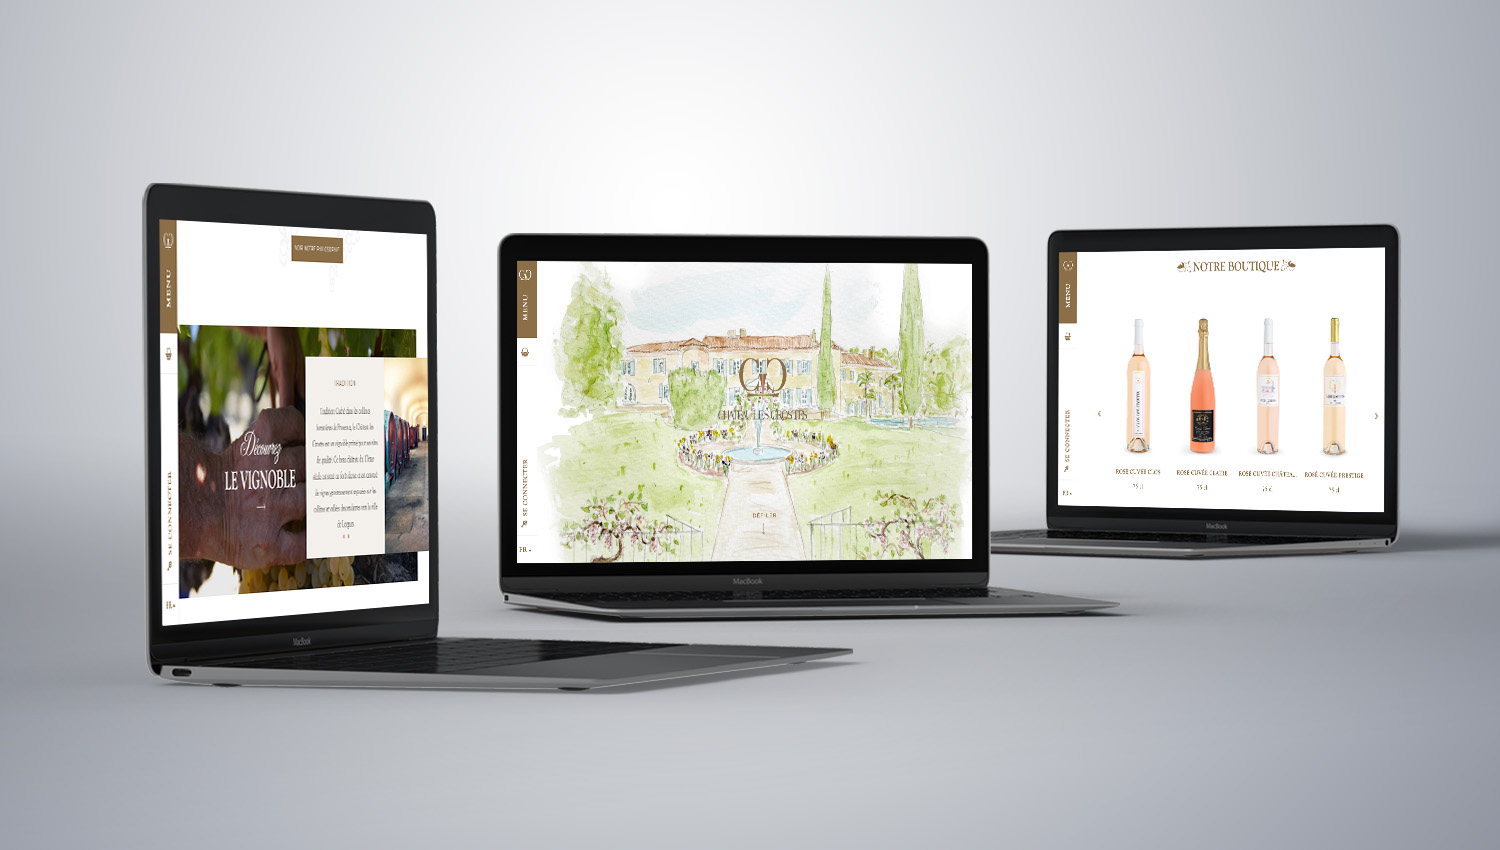 Web design desktop view for Château Les Crostes 1 by 8 Ways